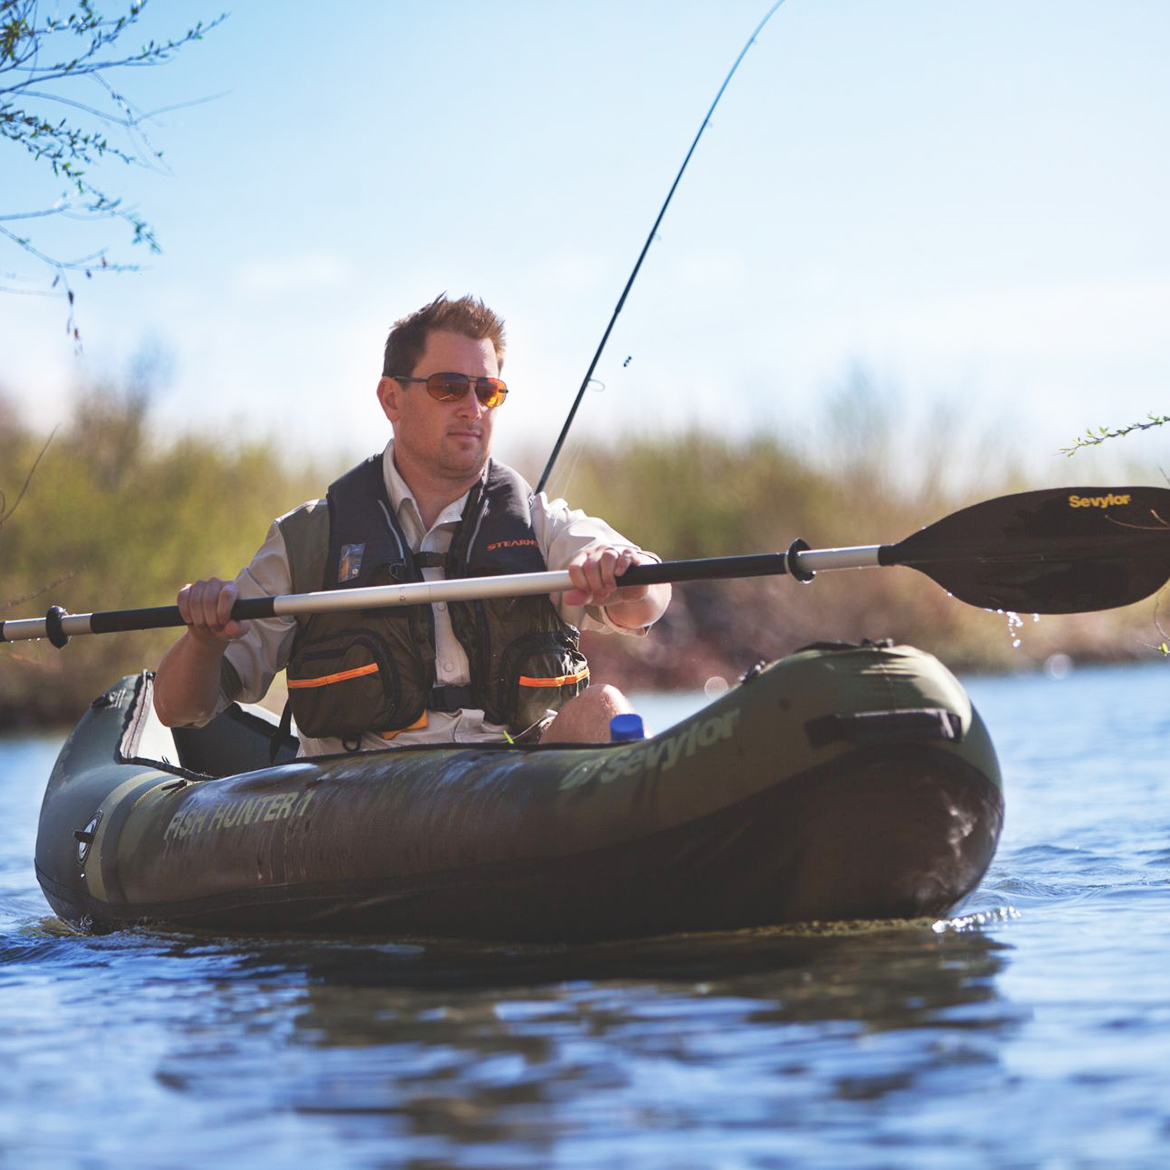 Sevylor Rio Fish/Hunt 1-Person Inflatable Kayak